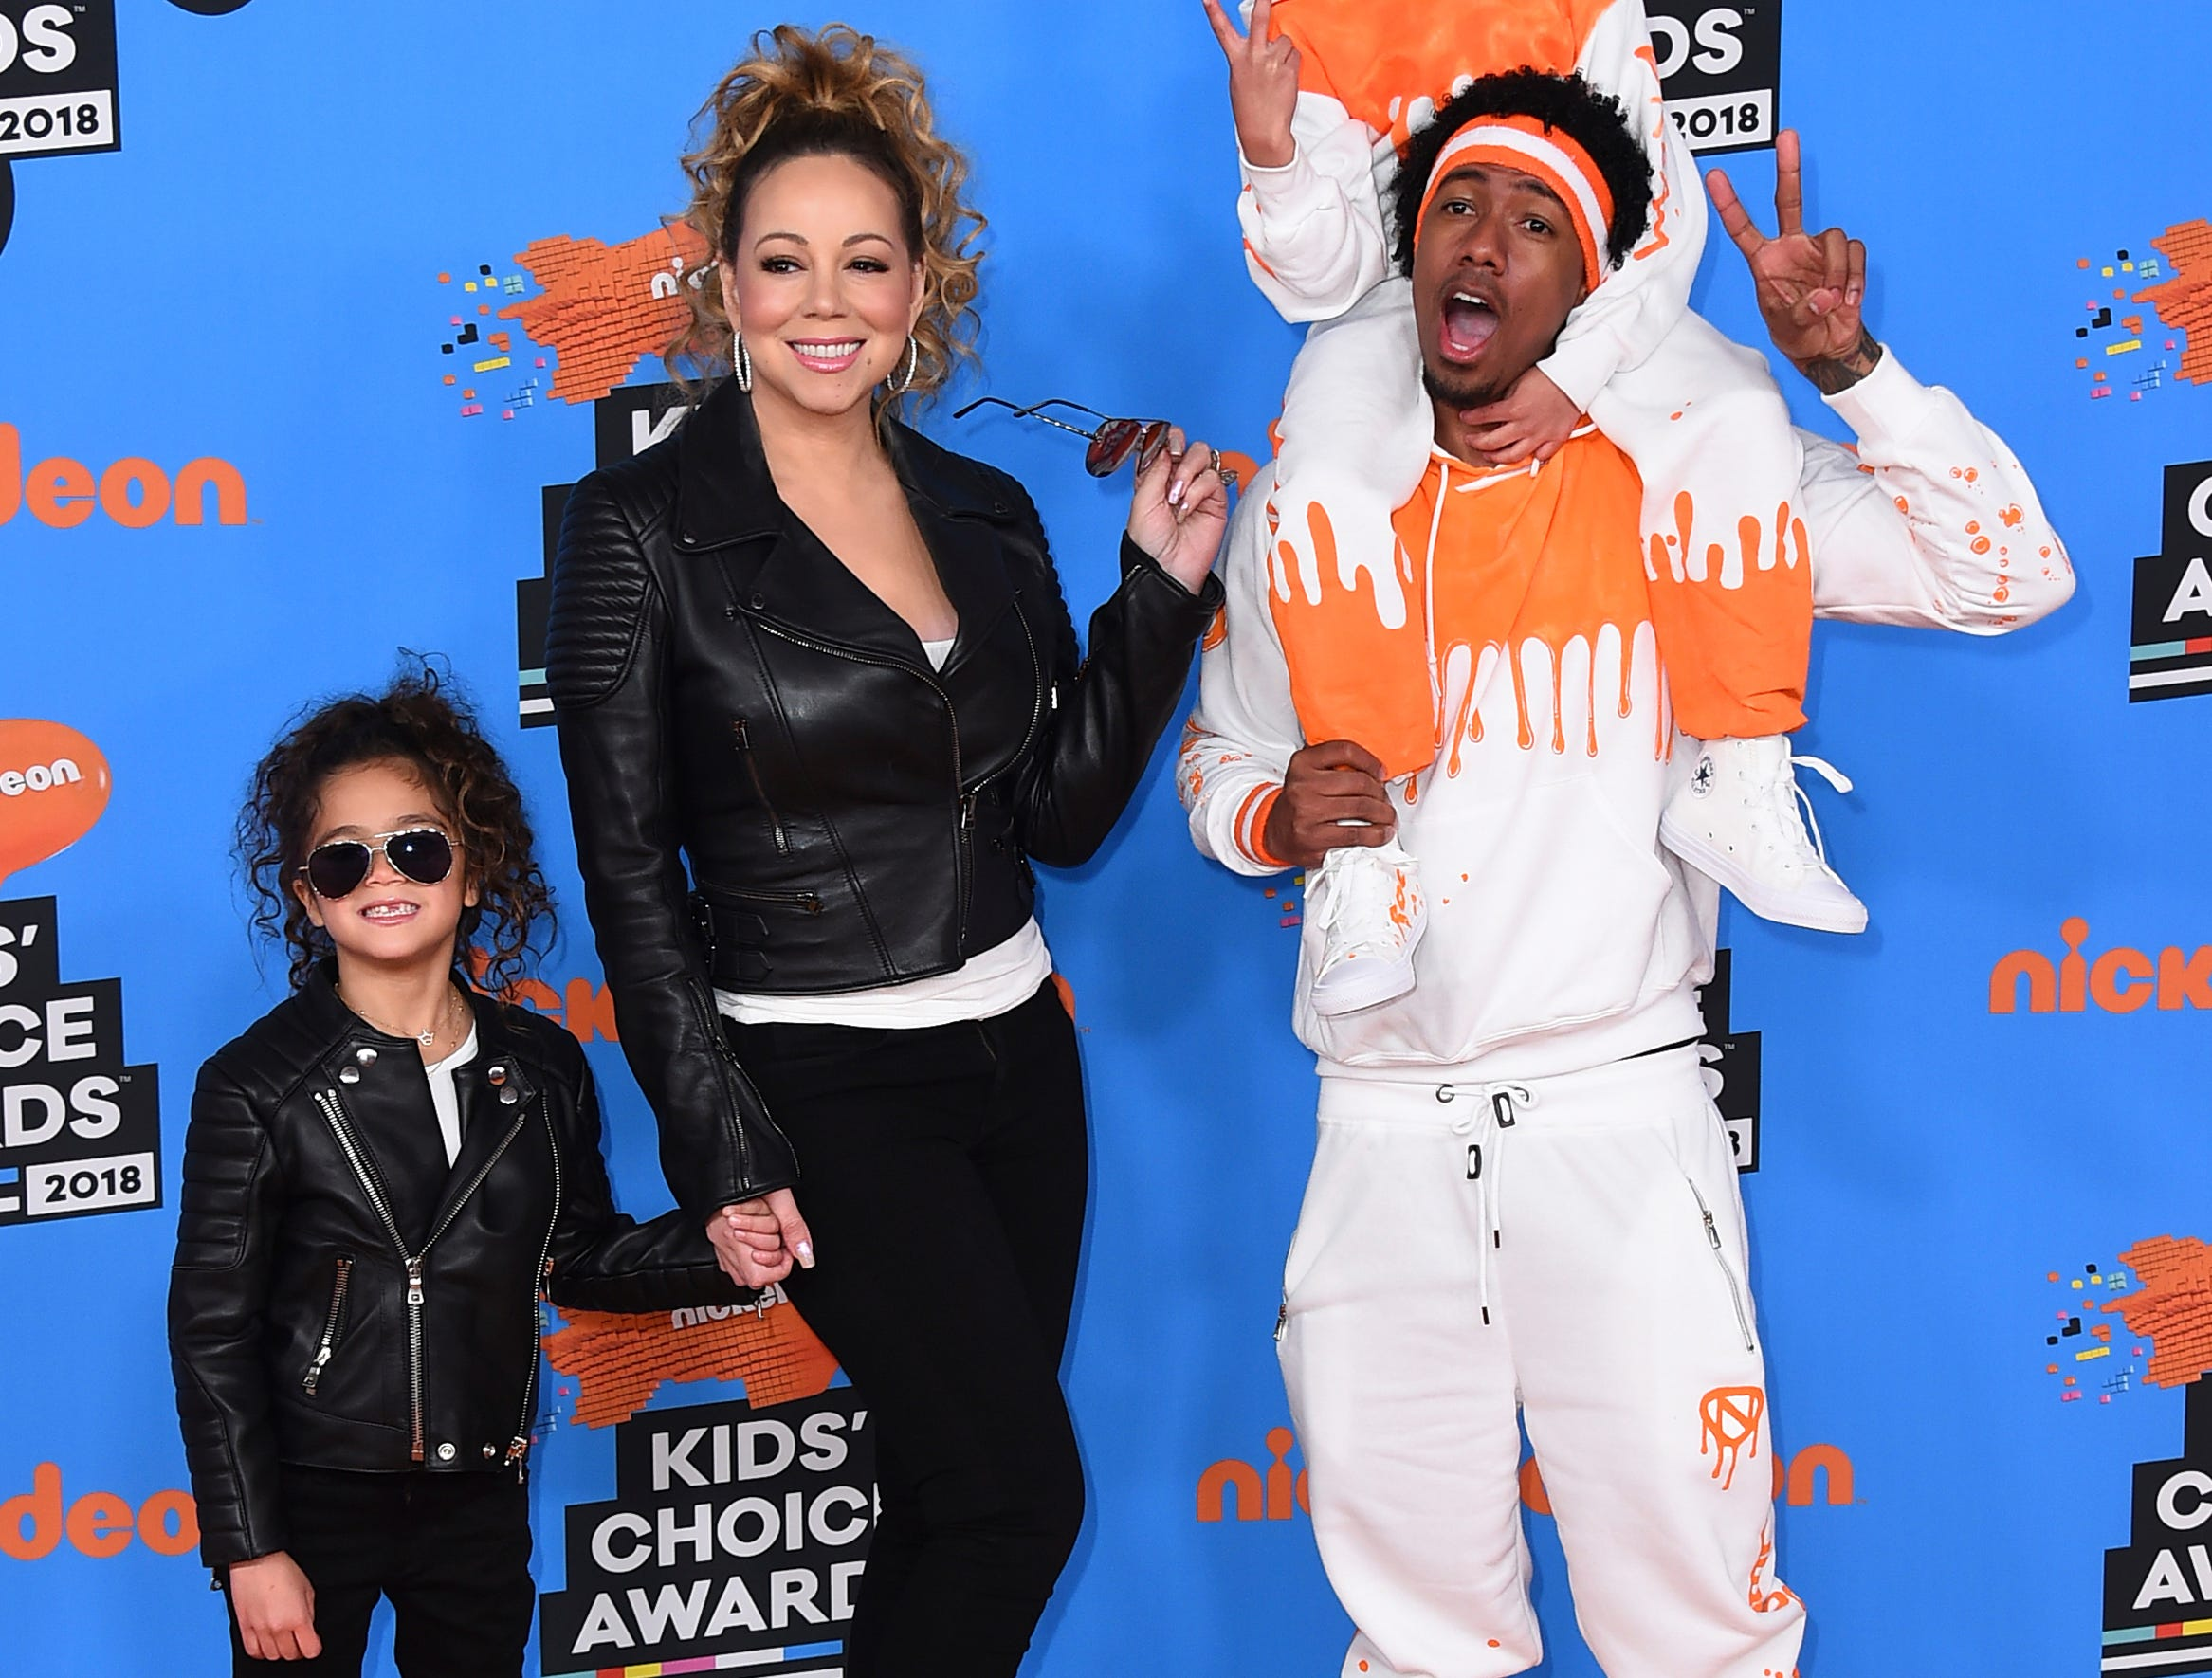 Mariah Carey, center left, Nick Cannon, center right, and from left, their children Monroe and Moroccan arrive at the Kids' Choice Awards at The Forum on Saturday, March 24, 2018, in Inglewood, Calif. (Photo by Jordan Strauss/Invision/AP) ORG XMIT: CADA197